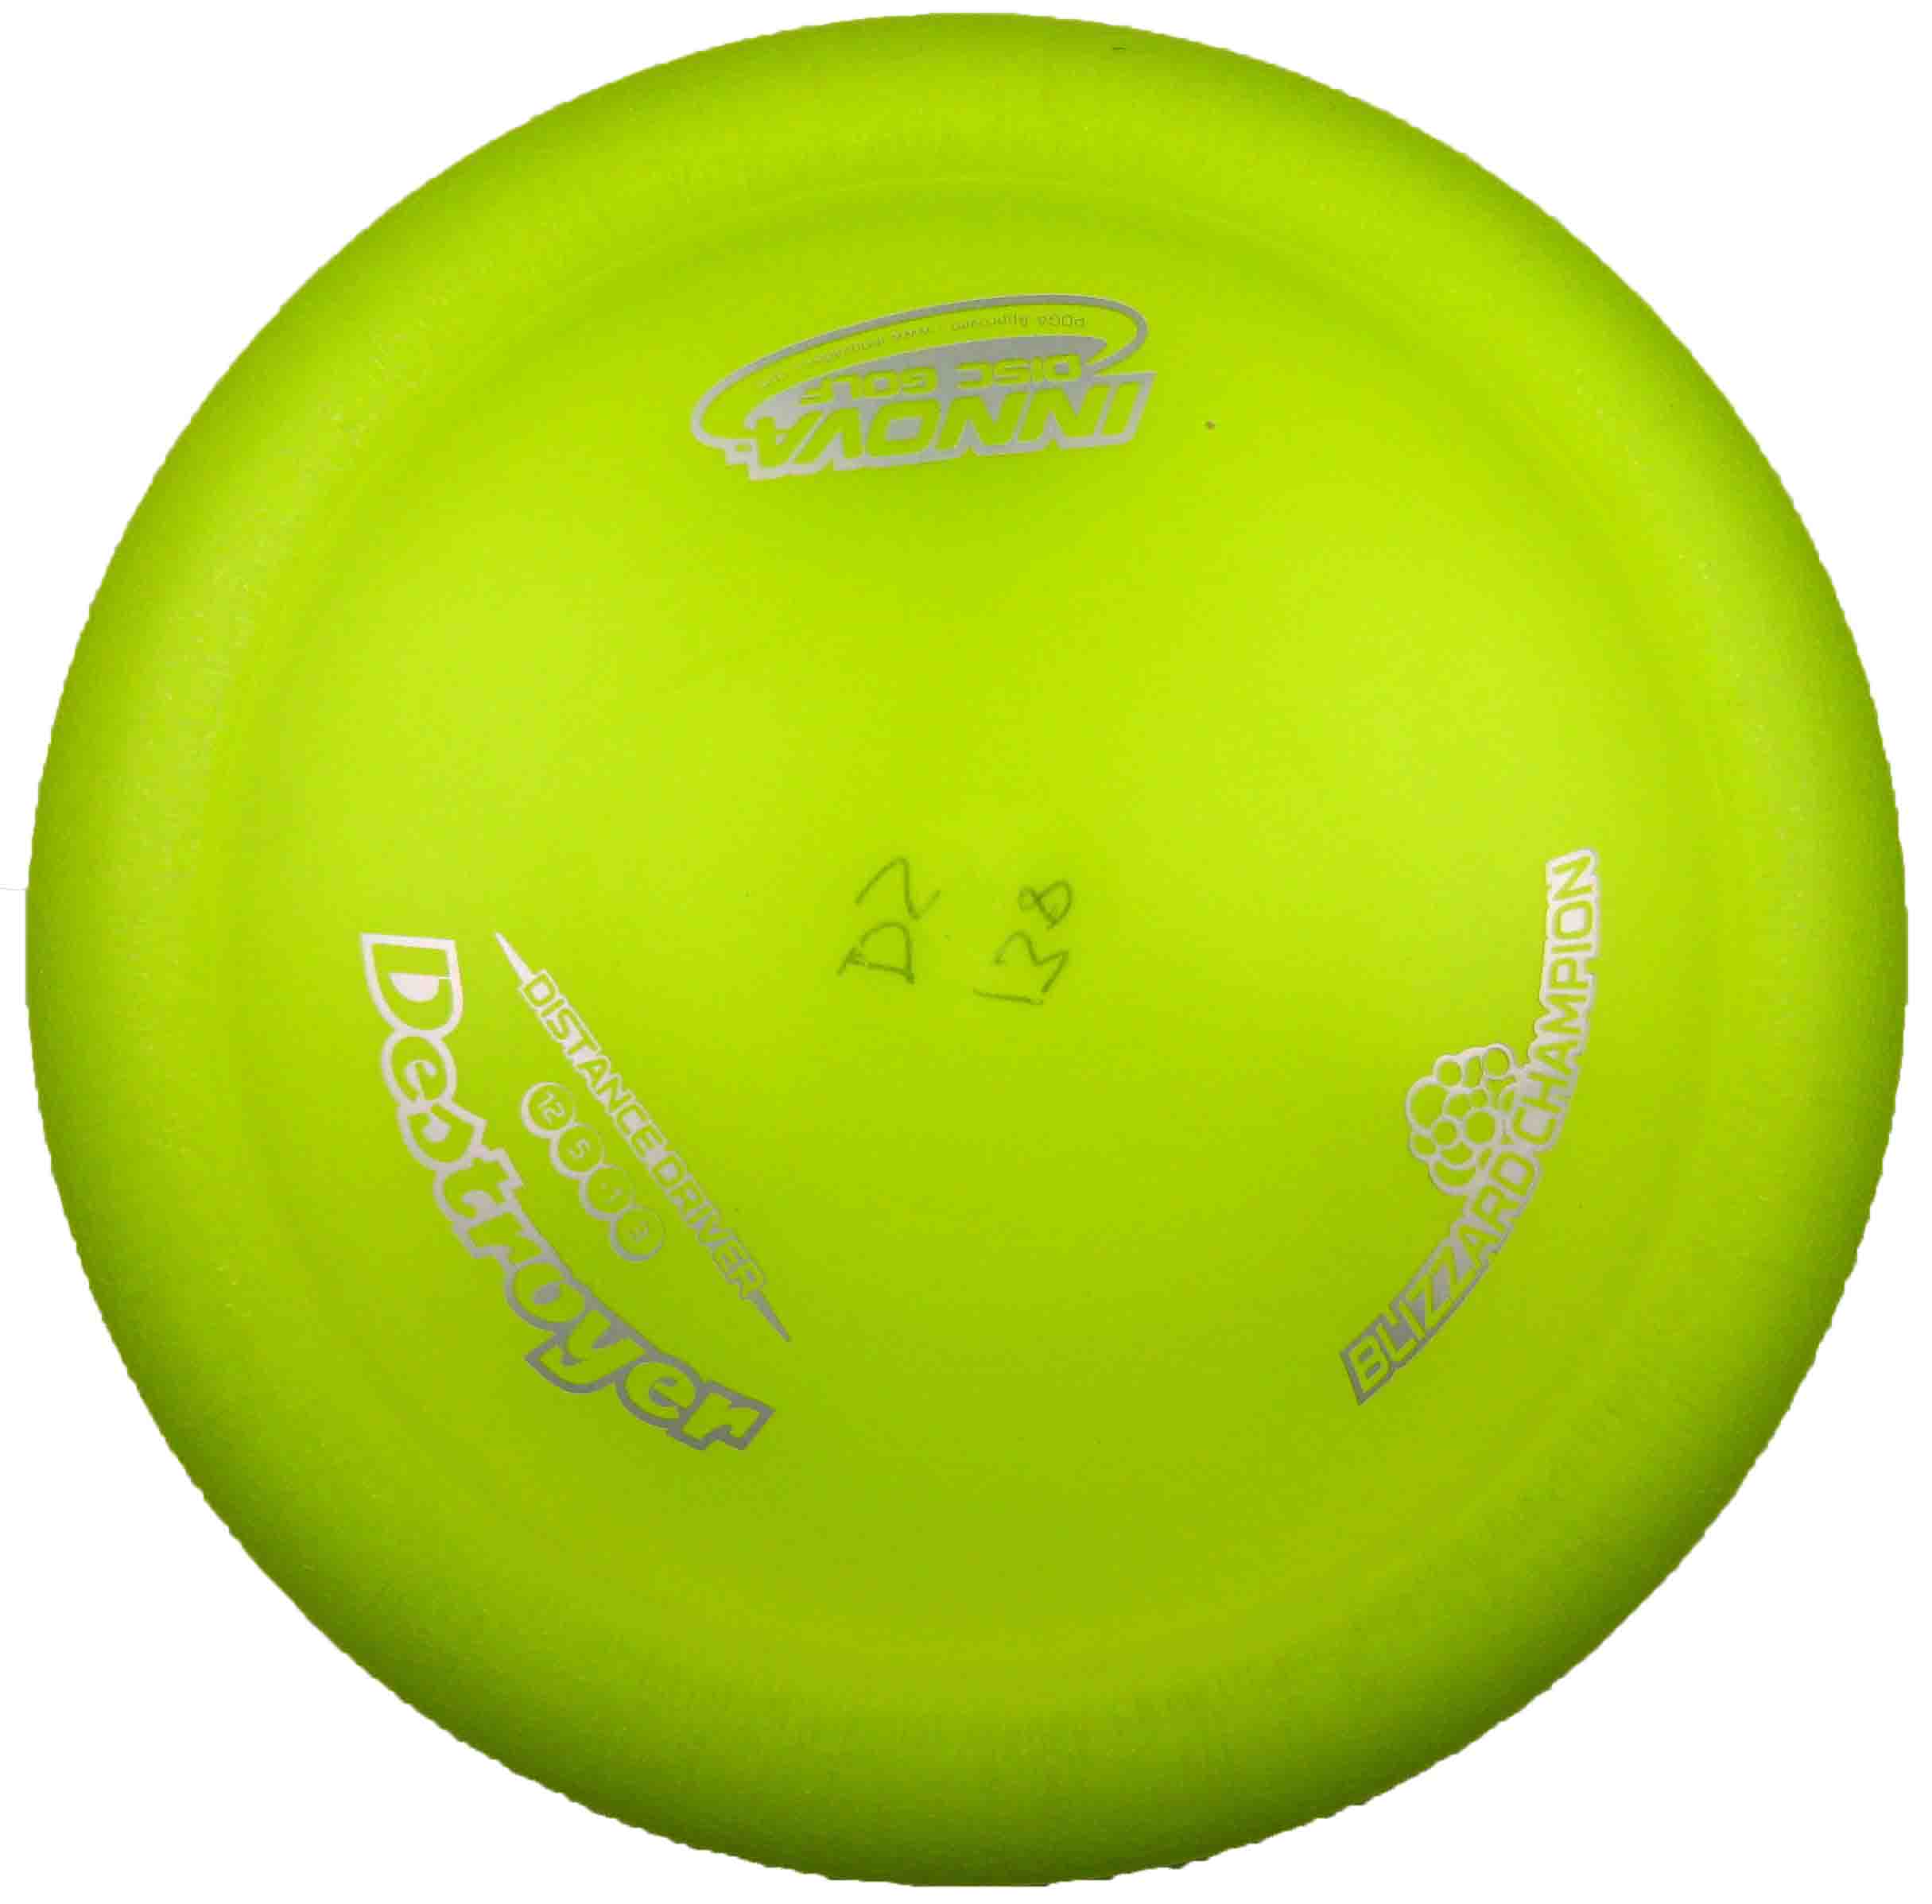 Destroyer Champion Blizzard Yellow